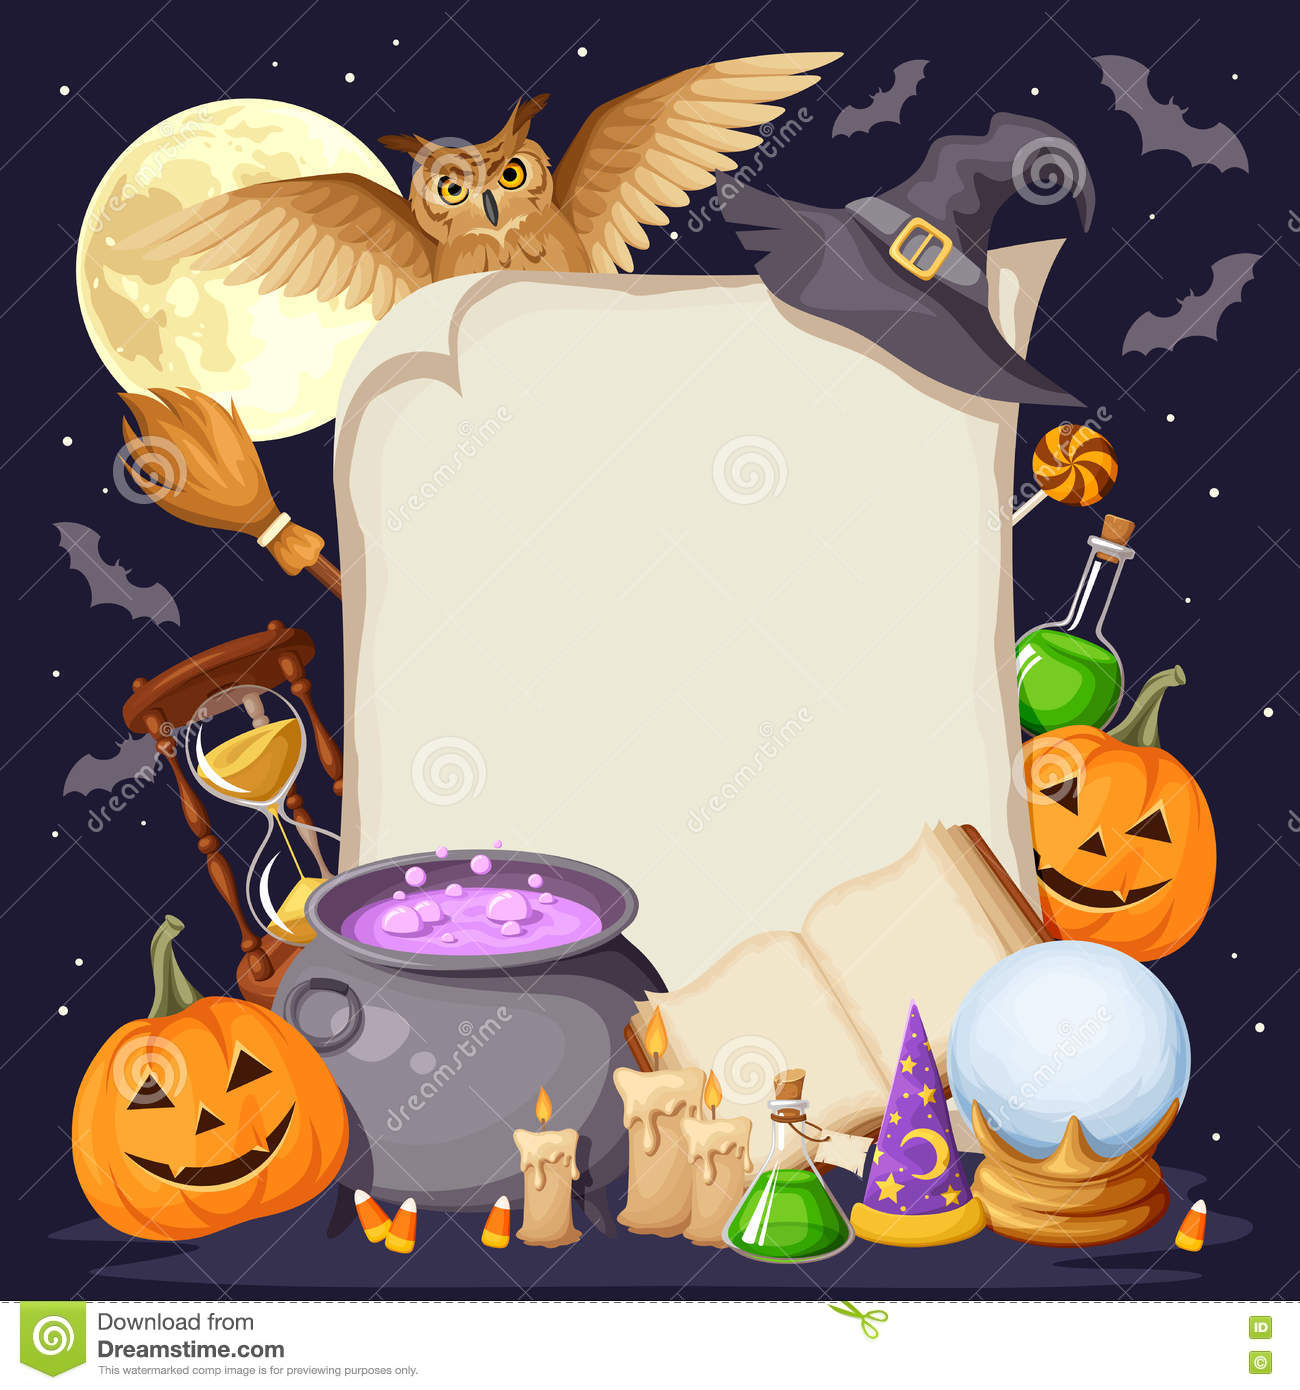 Halloween background with magic symbols. Vector eps-10.